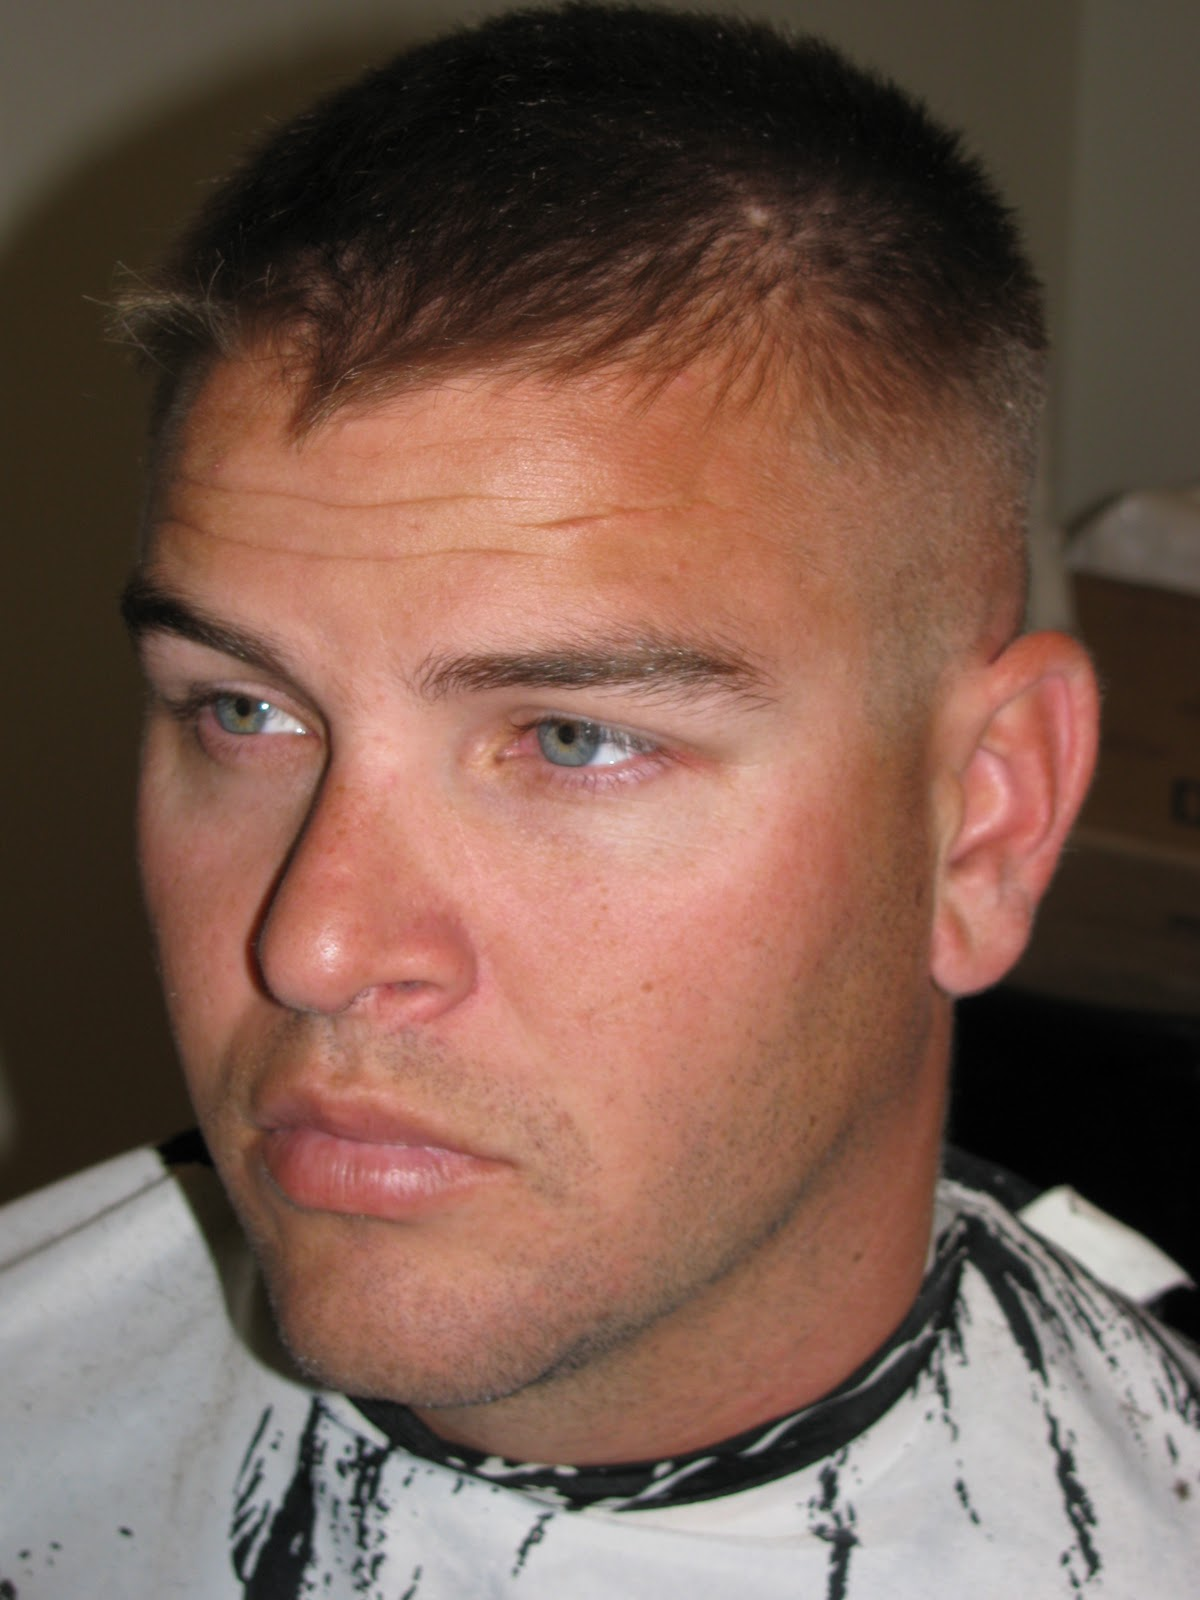 Marine Corps Haircut Styles Picture Dohoaso